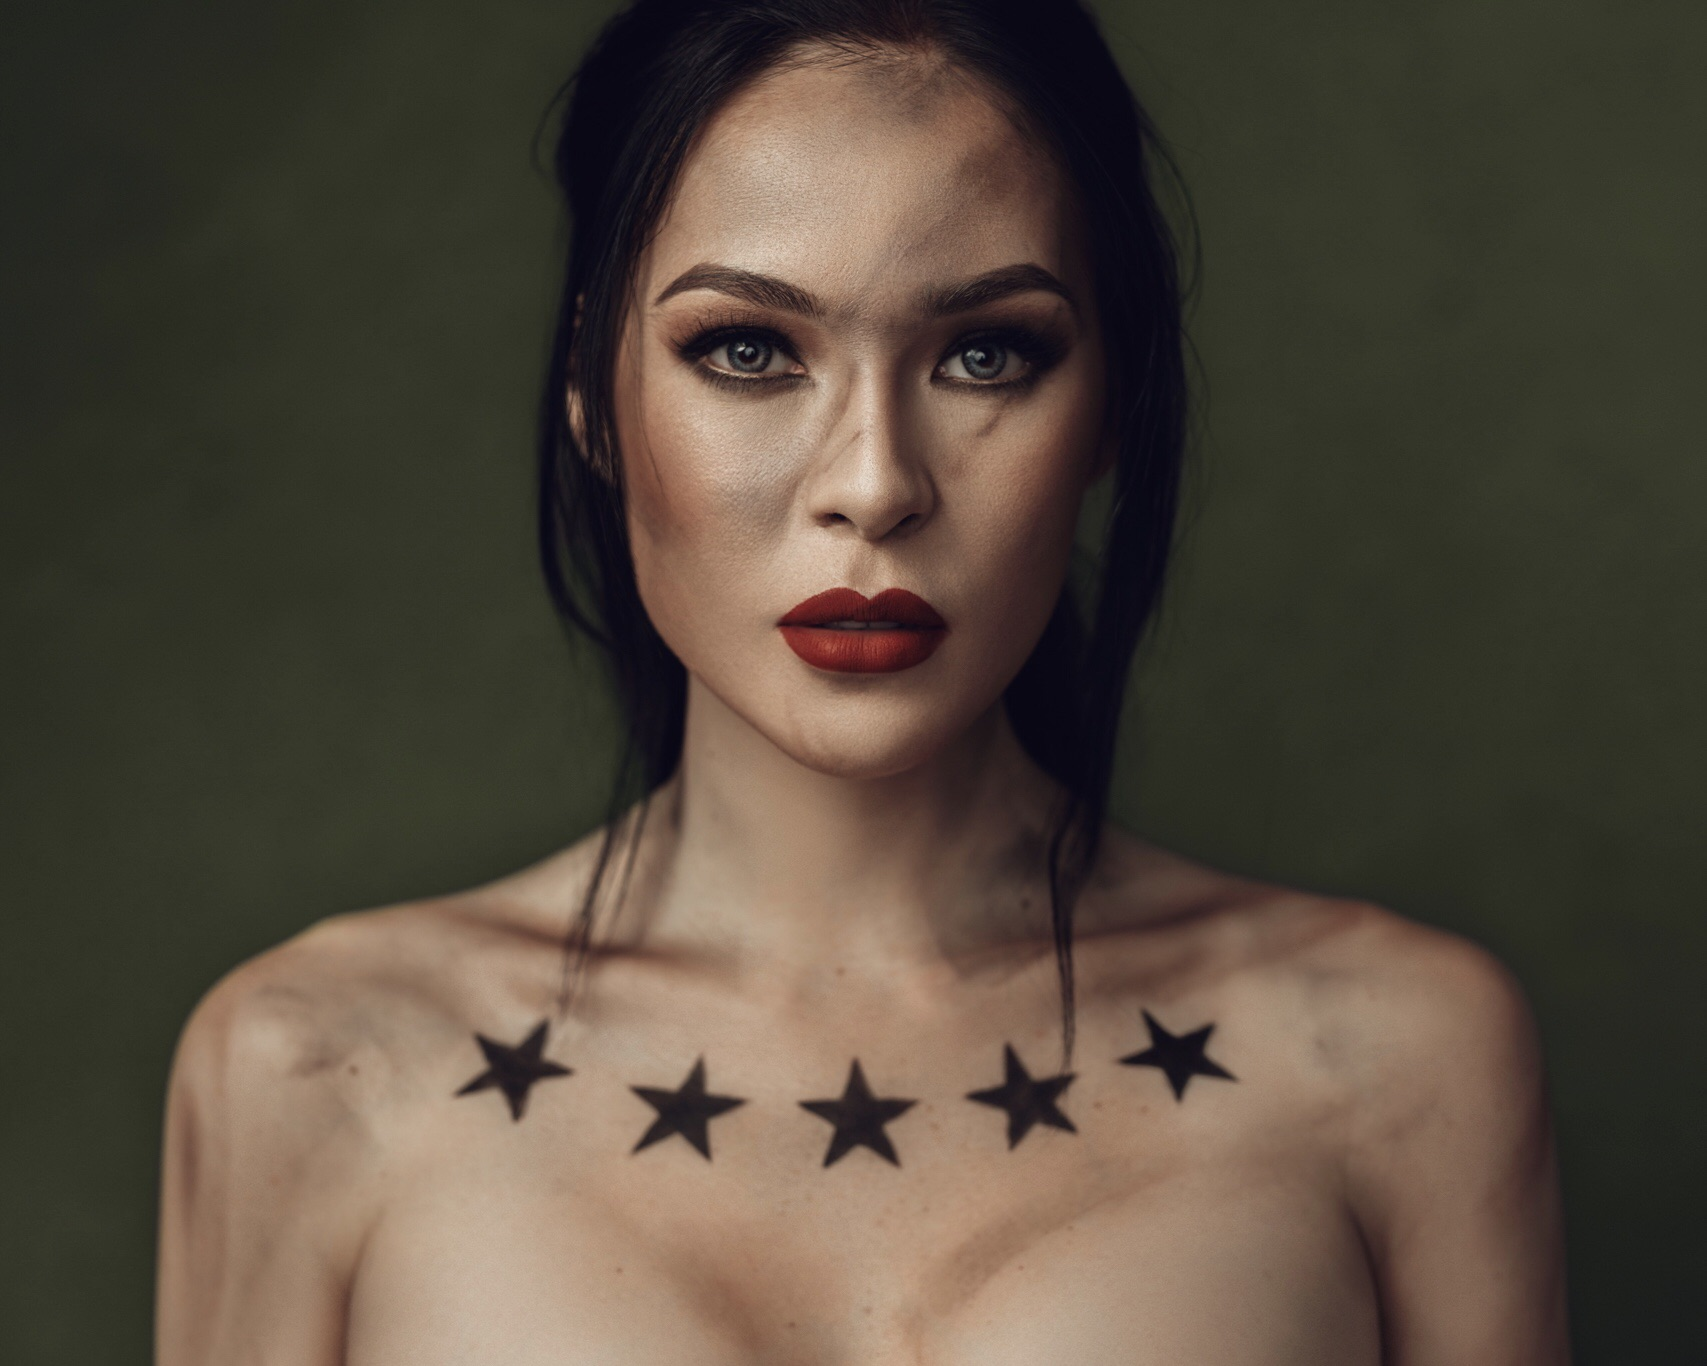 Photography Bio on Rodney Torres – A Portrait Photographer From Manila